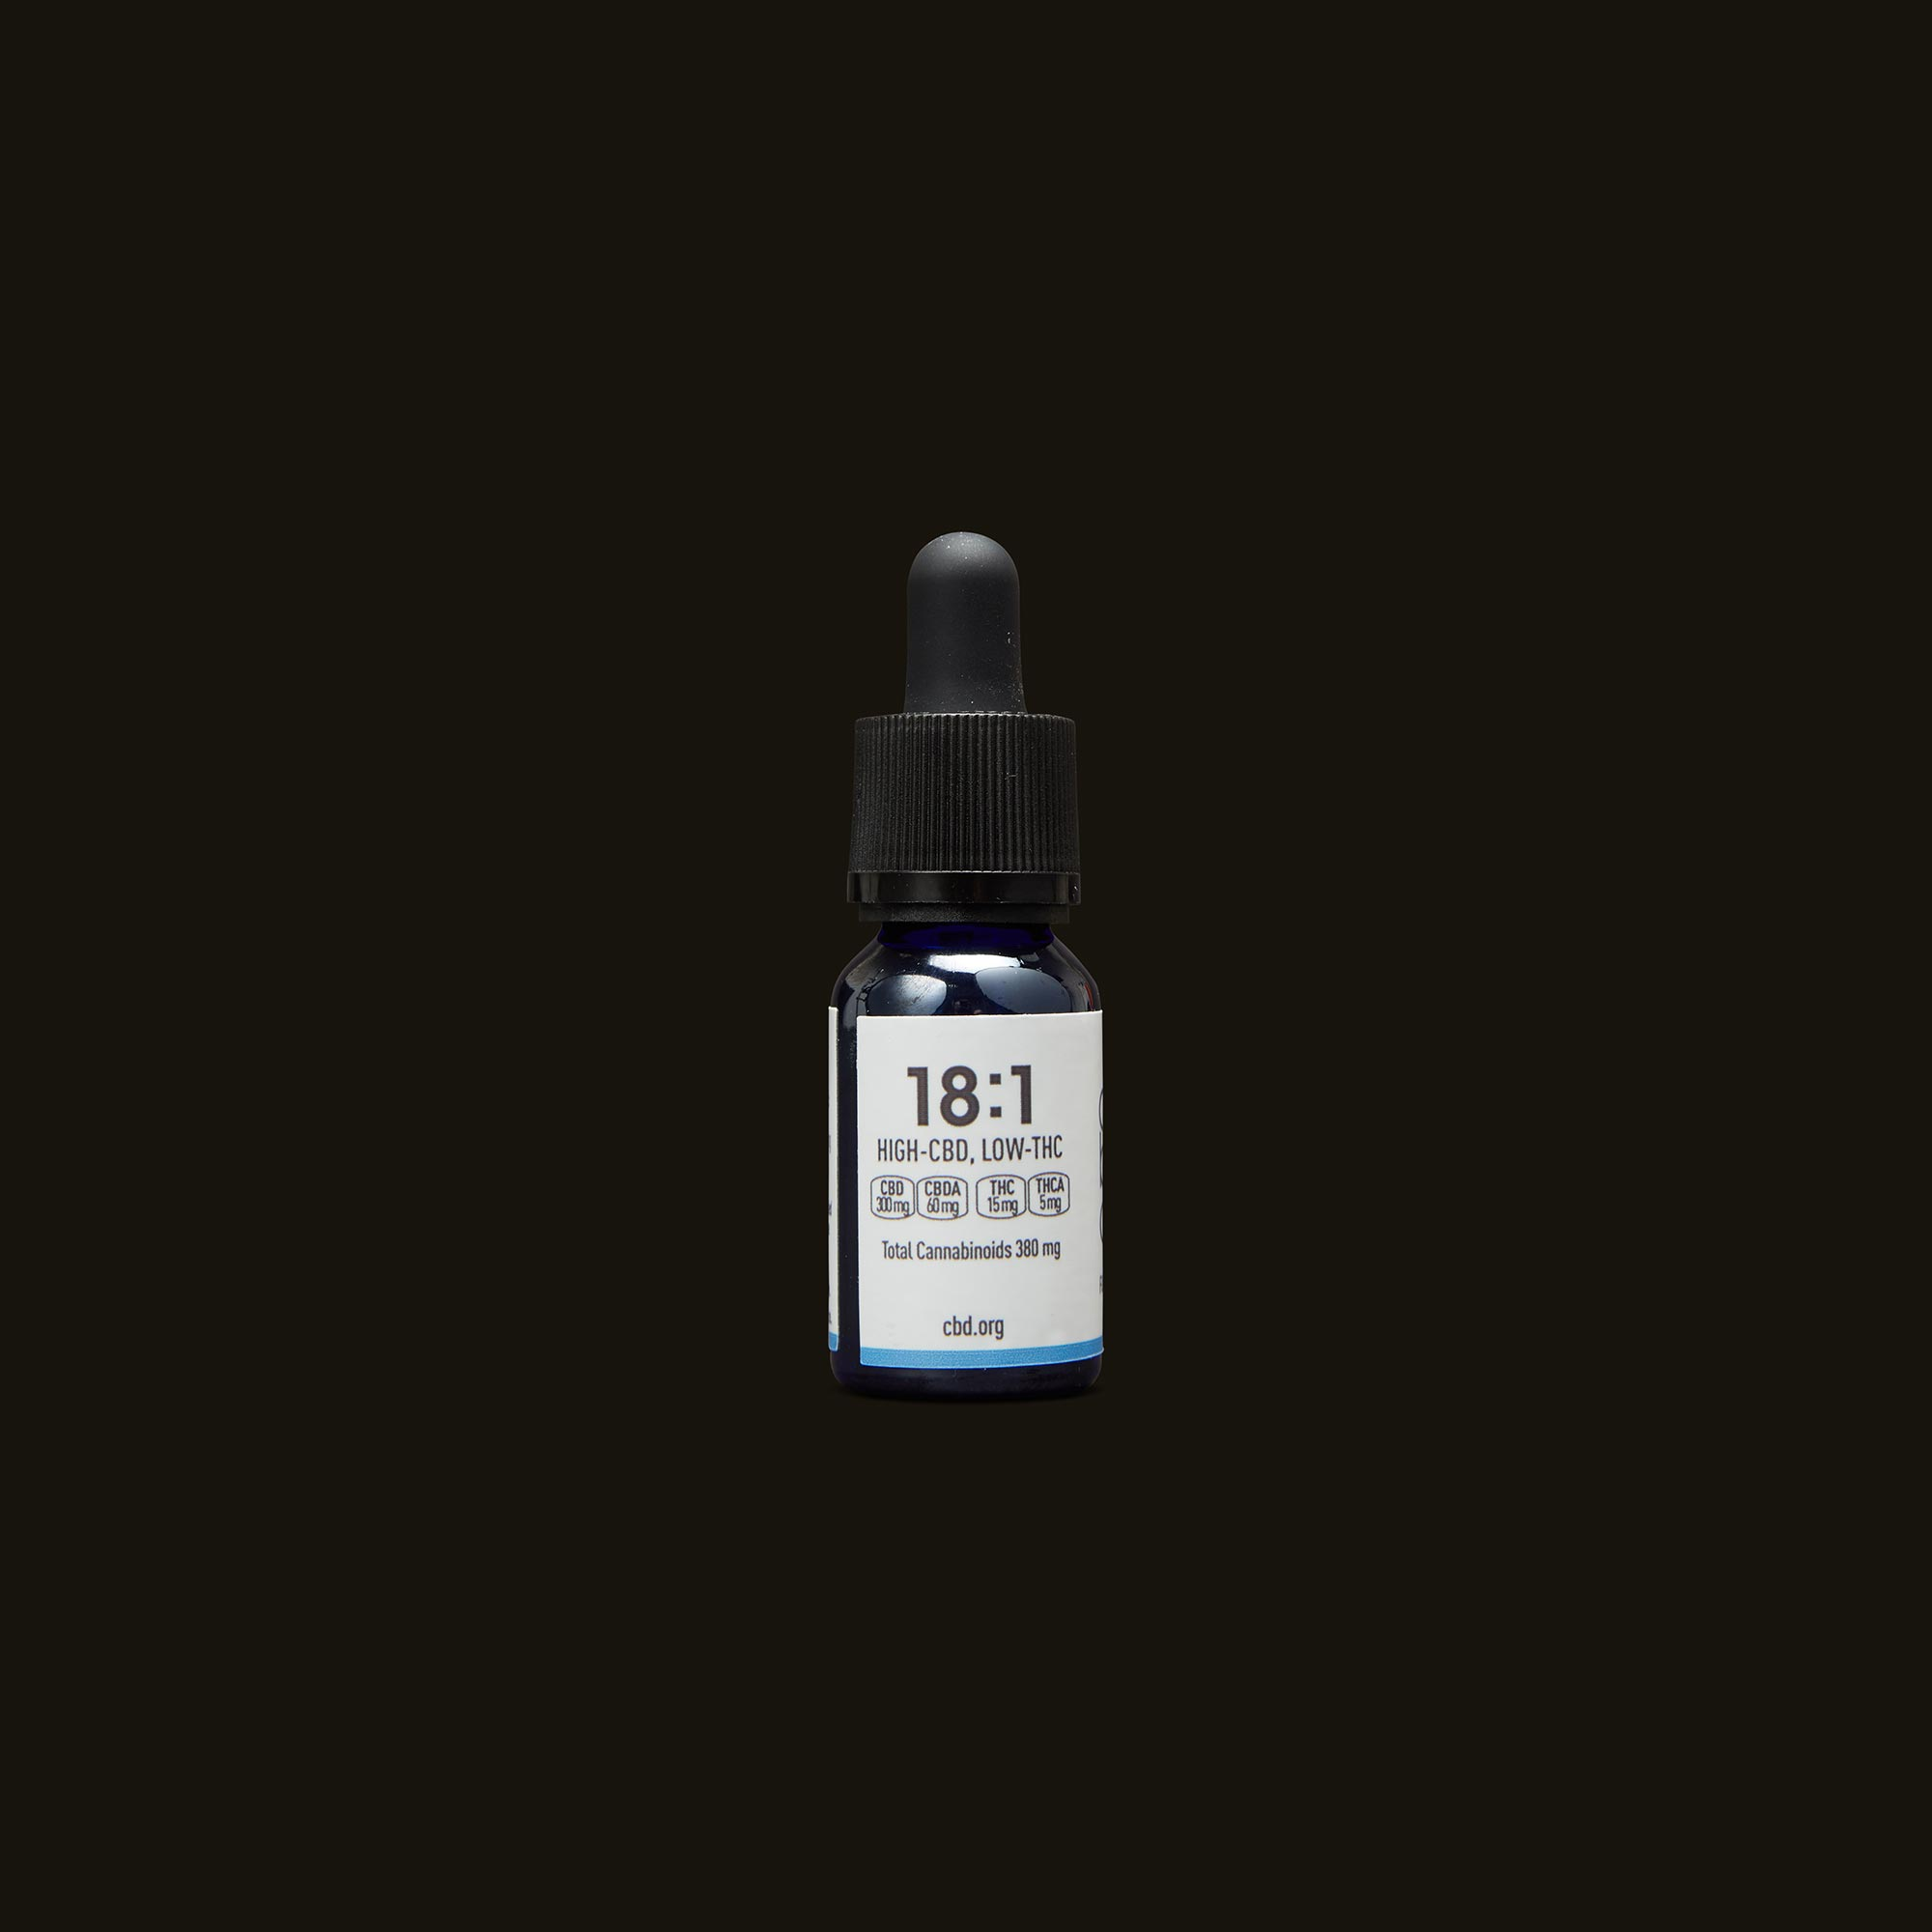 Care By Design 18:1 Full Spectrum CBD Drops - 0.5oz Back Tincture